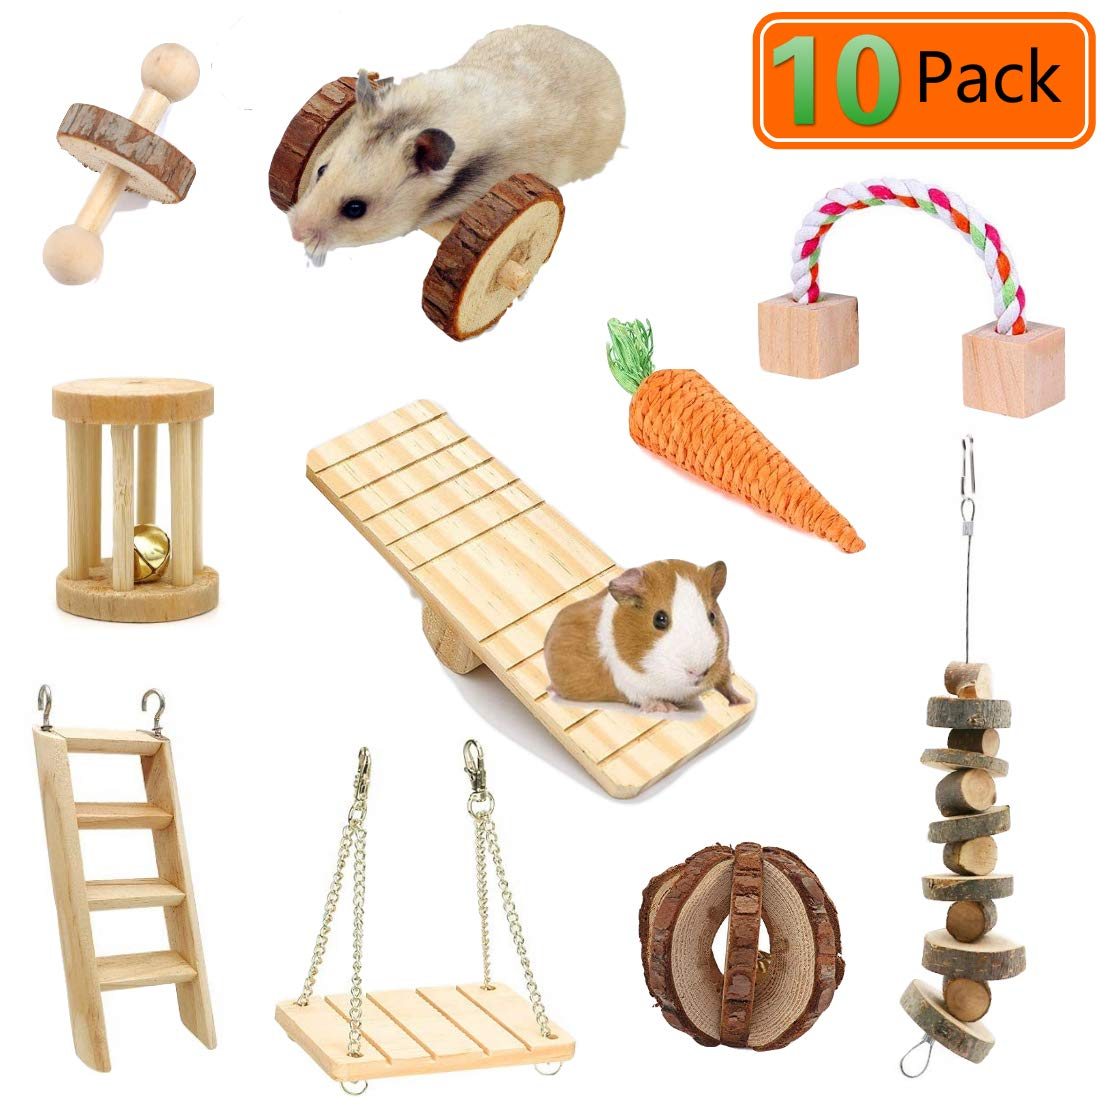 JEMPET Hamster Chew Toys, Natural Wooden Pine Guinea Pigs Rats Chinchillas Toys Accessories, Dumbbells Exercise Ball Roller Teeth Care Molar Toy for Birds Bunny Rabbits Gerbils (10 Pack)